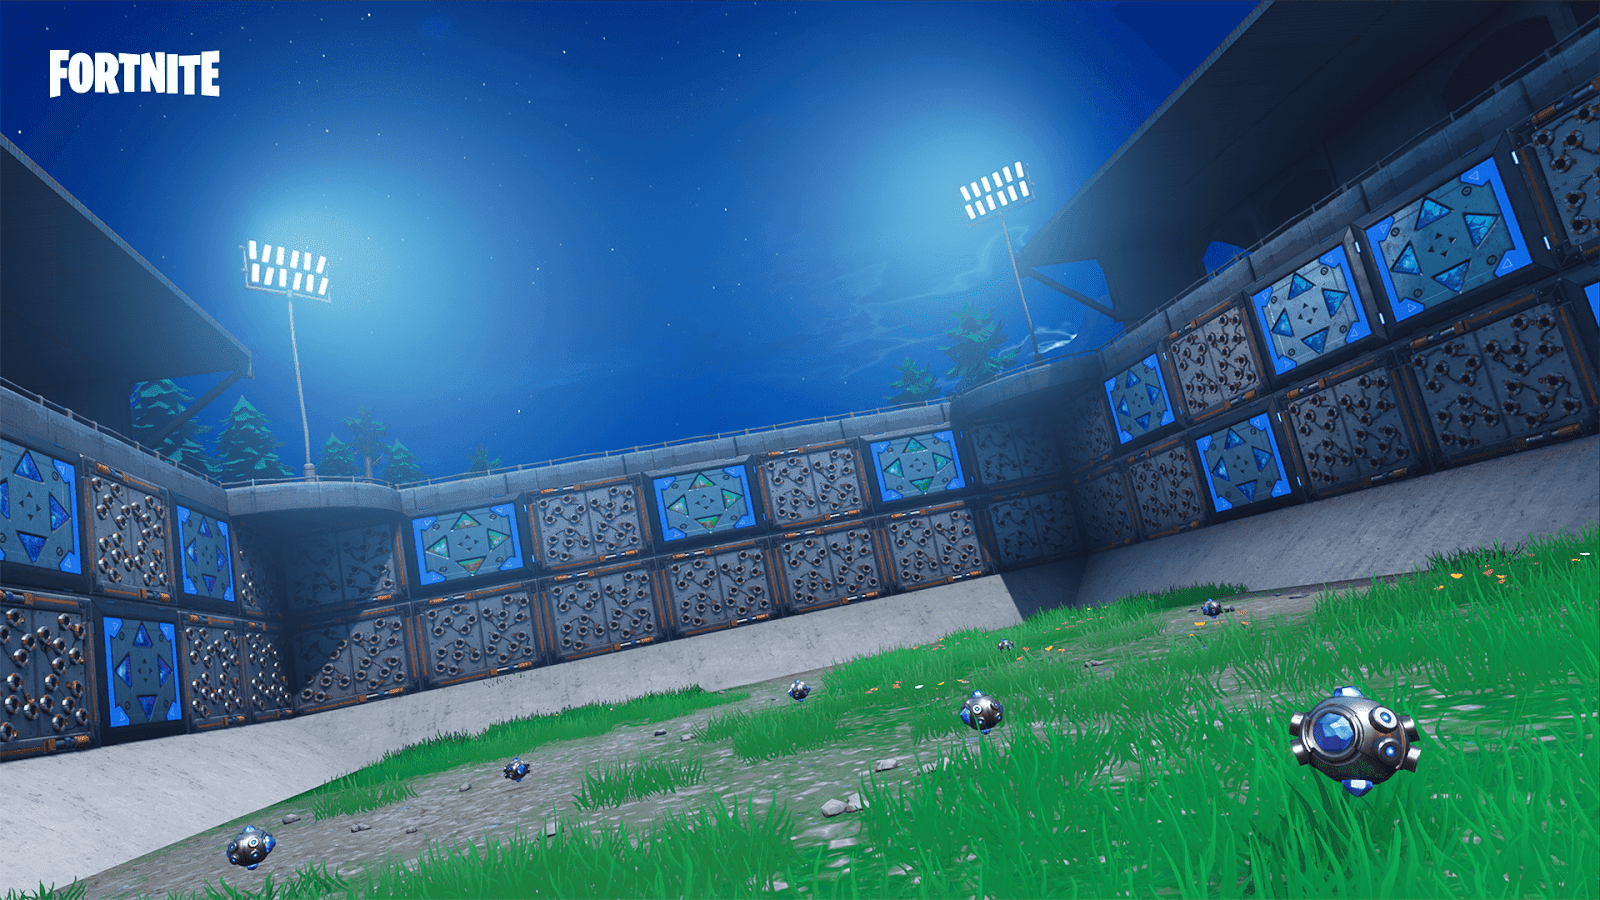 Fortnite V5.41 Patch Notes Update - Spiky Stadium, Port-A-Fortress